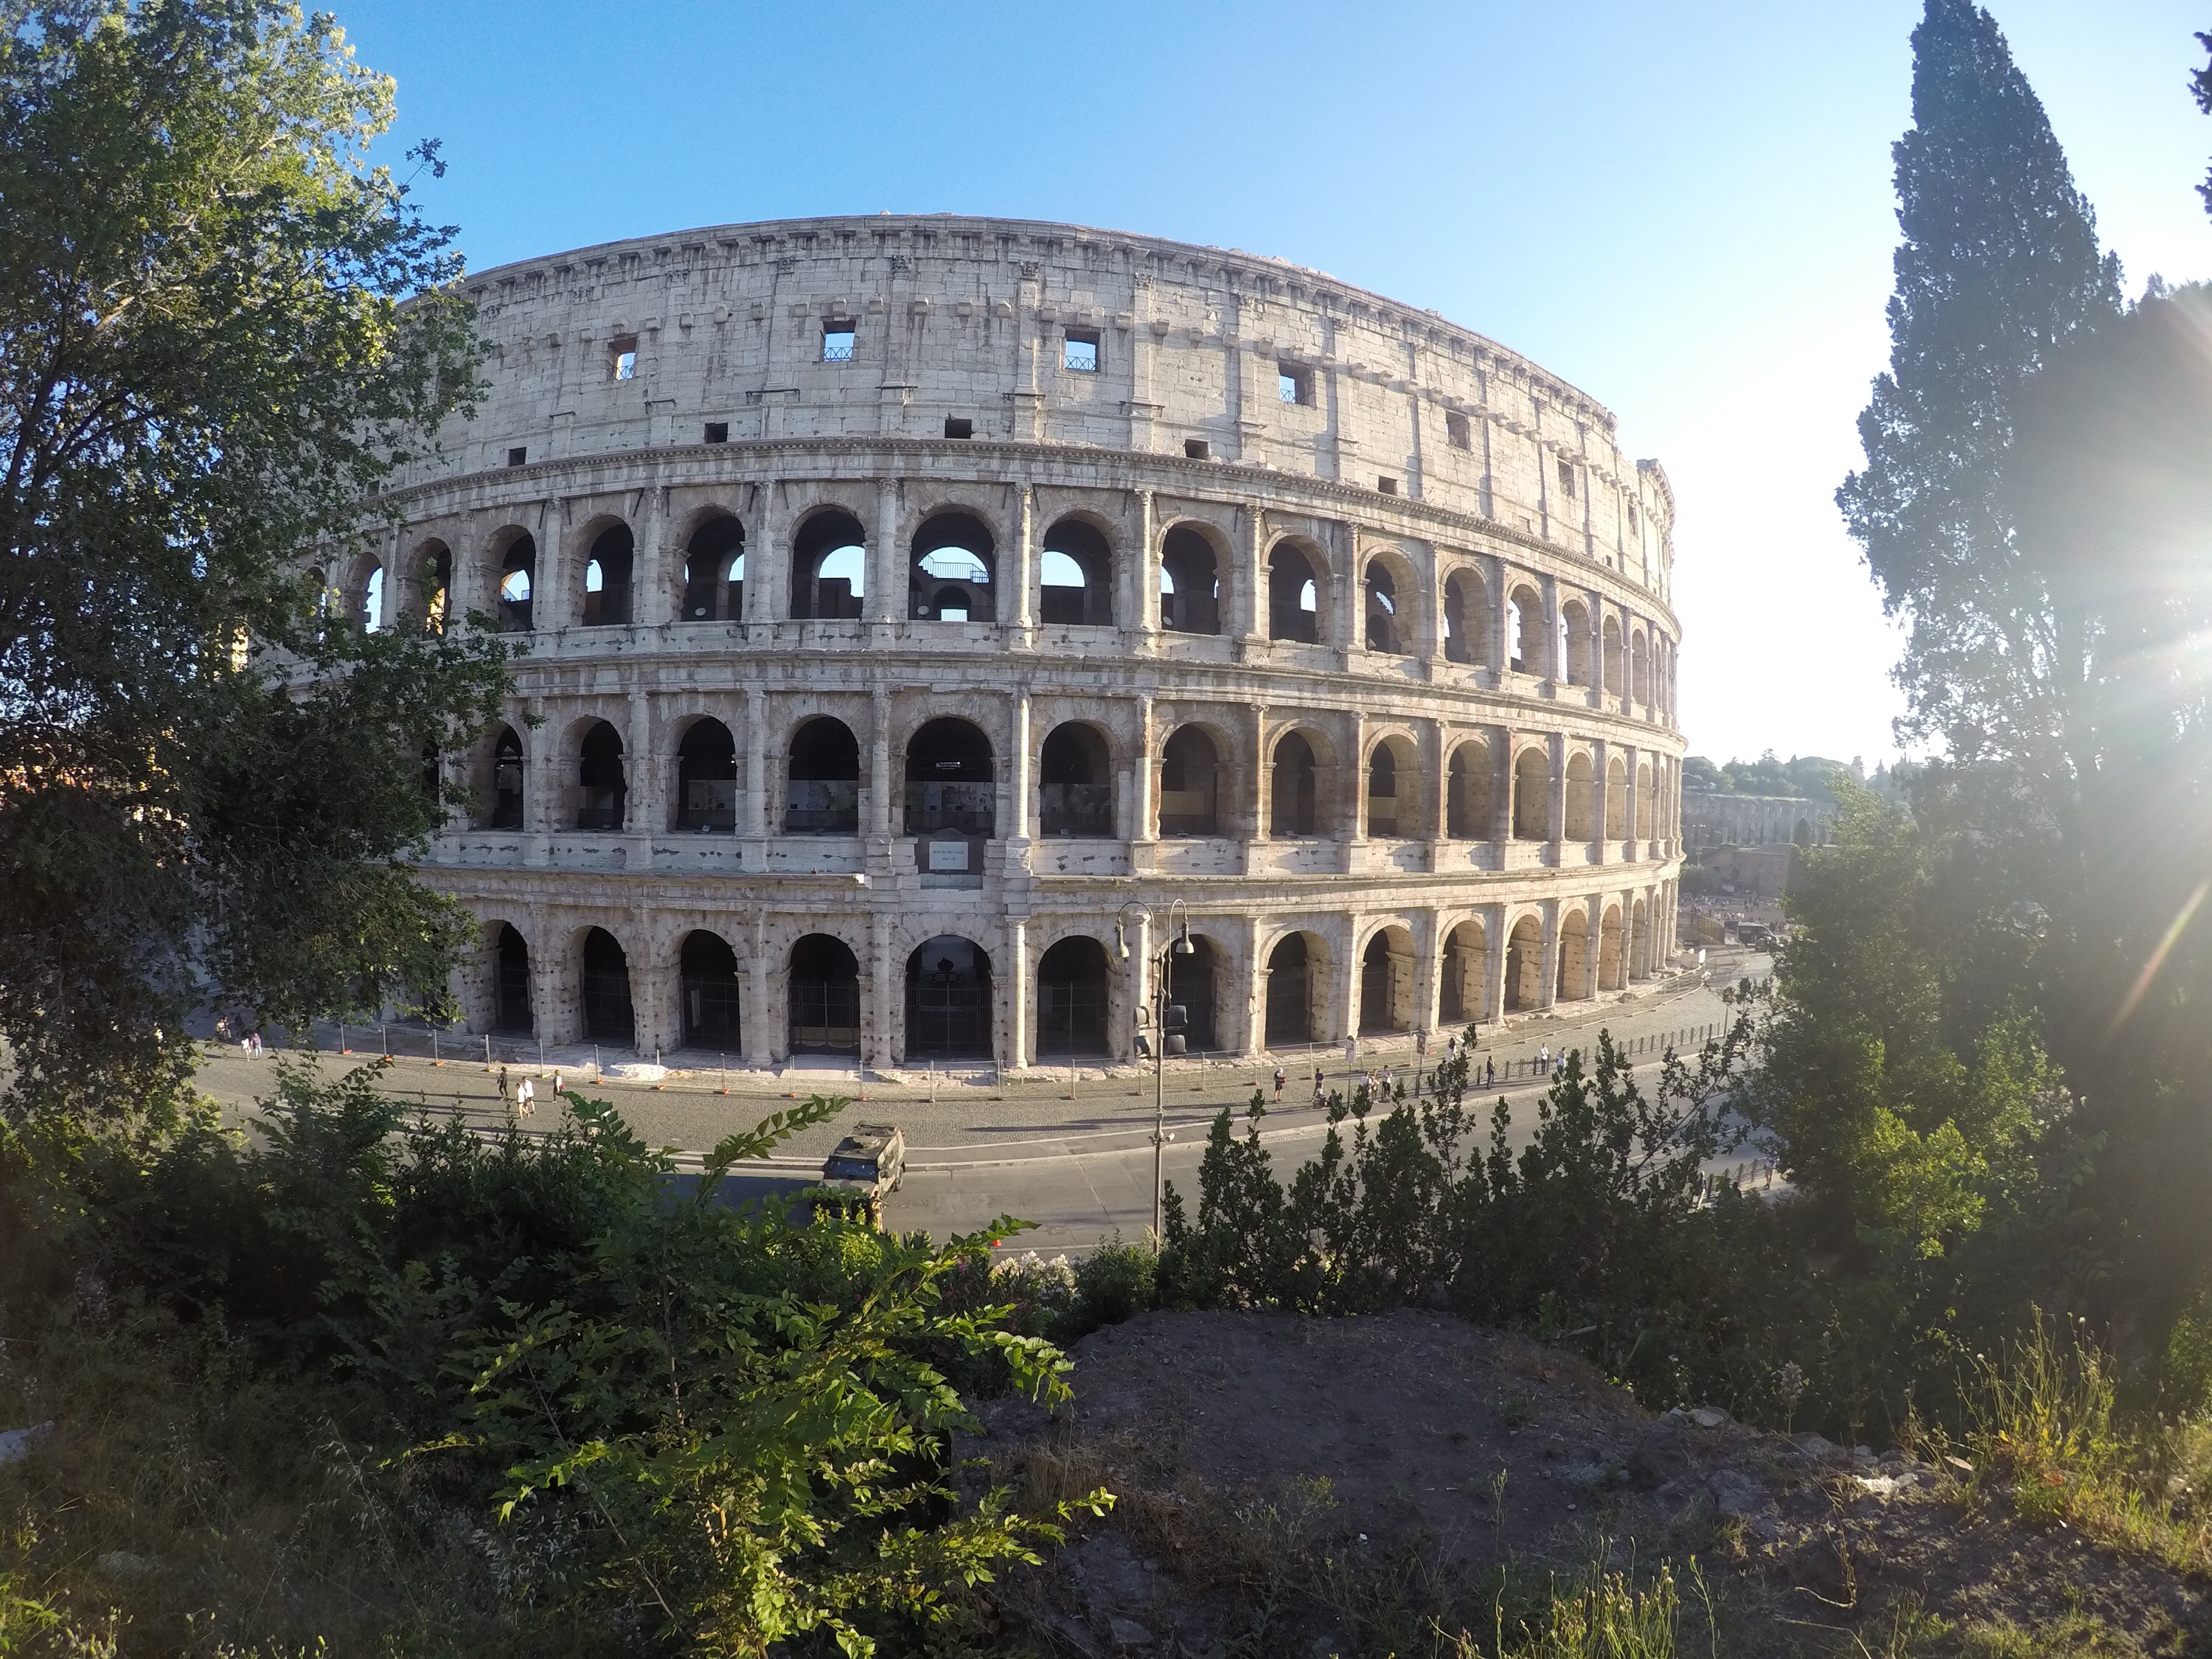 Visiting the colosseum!!!